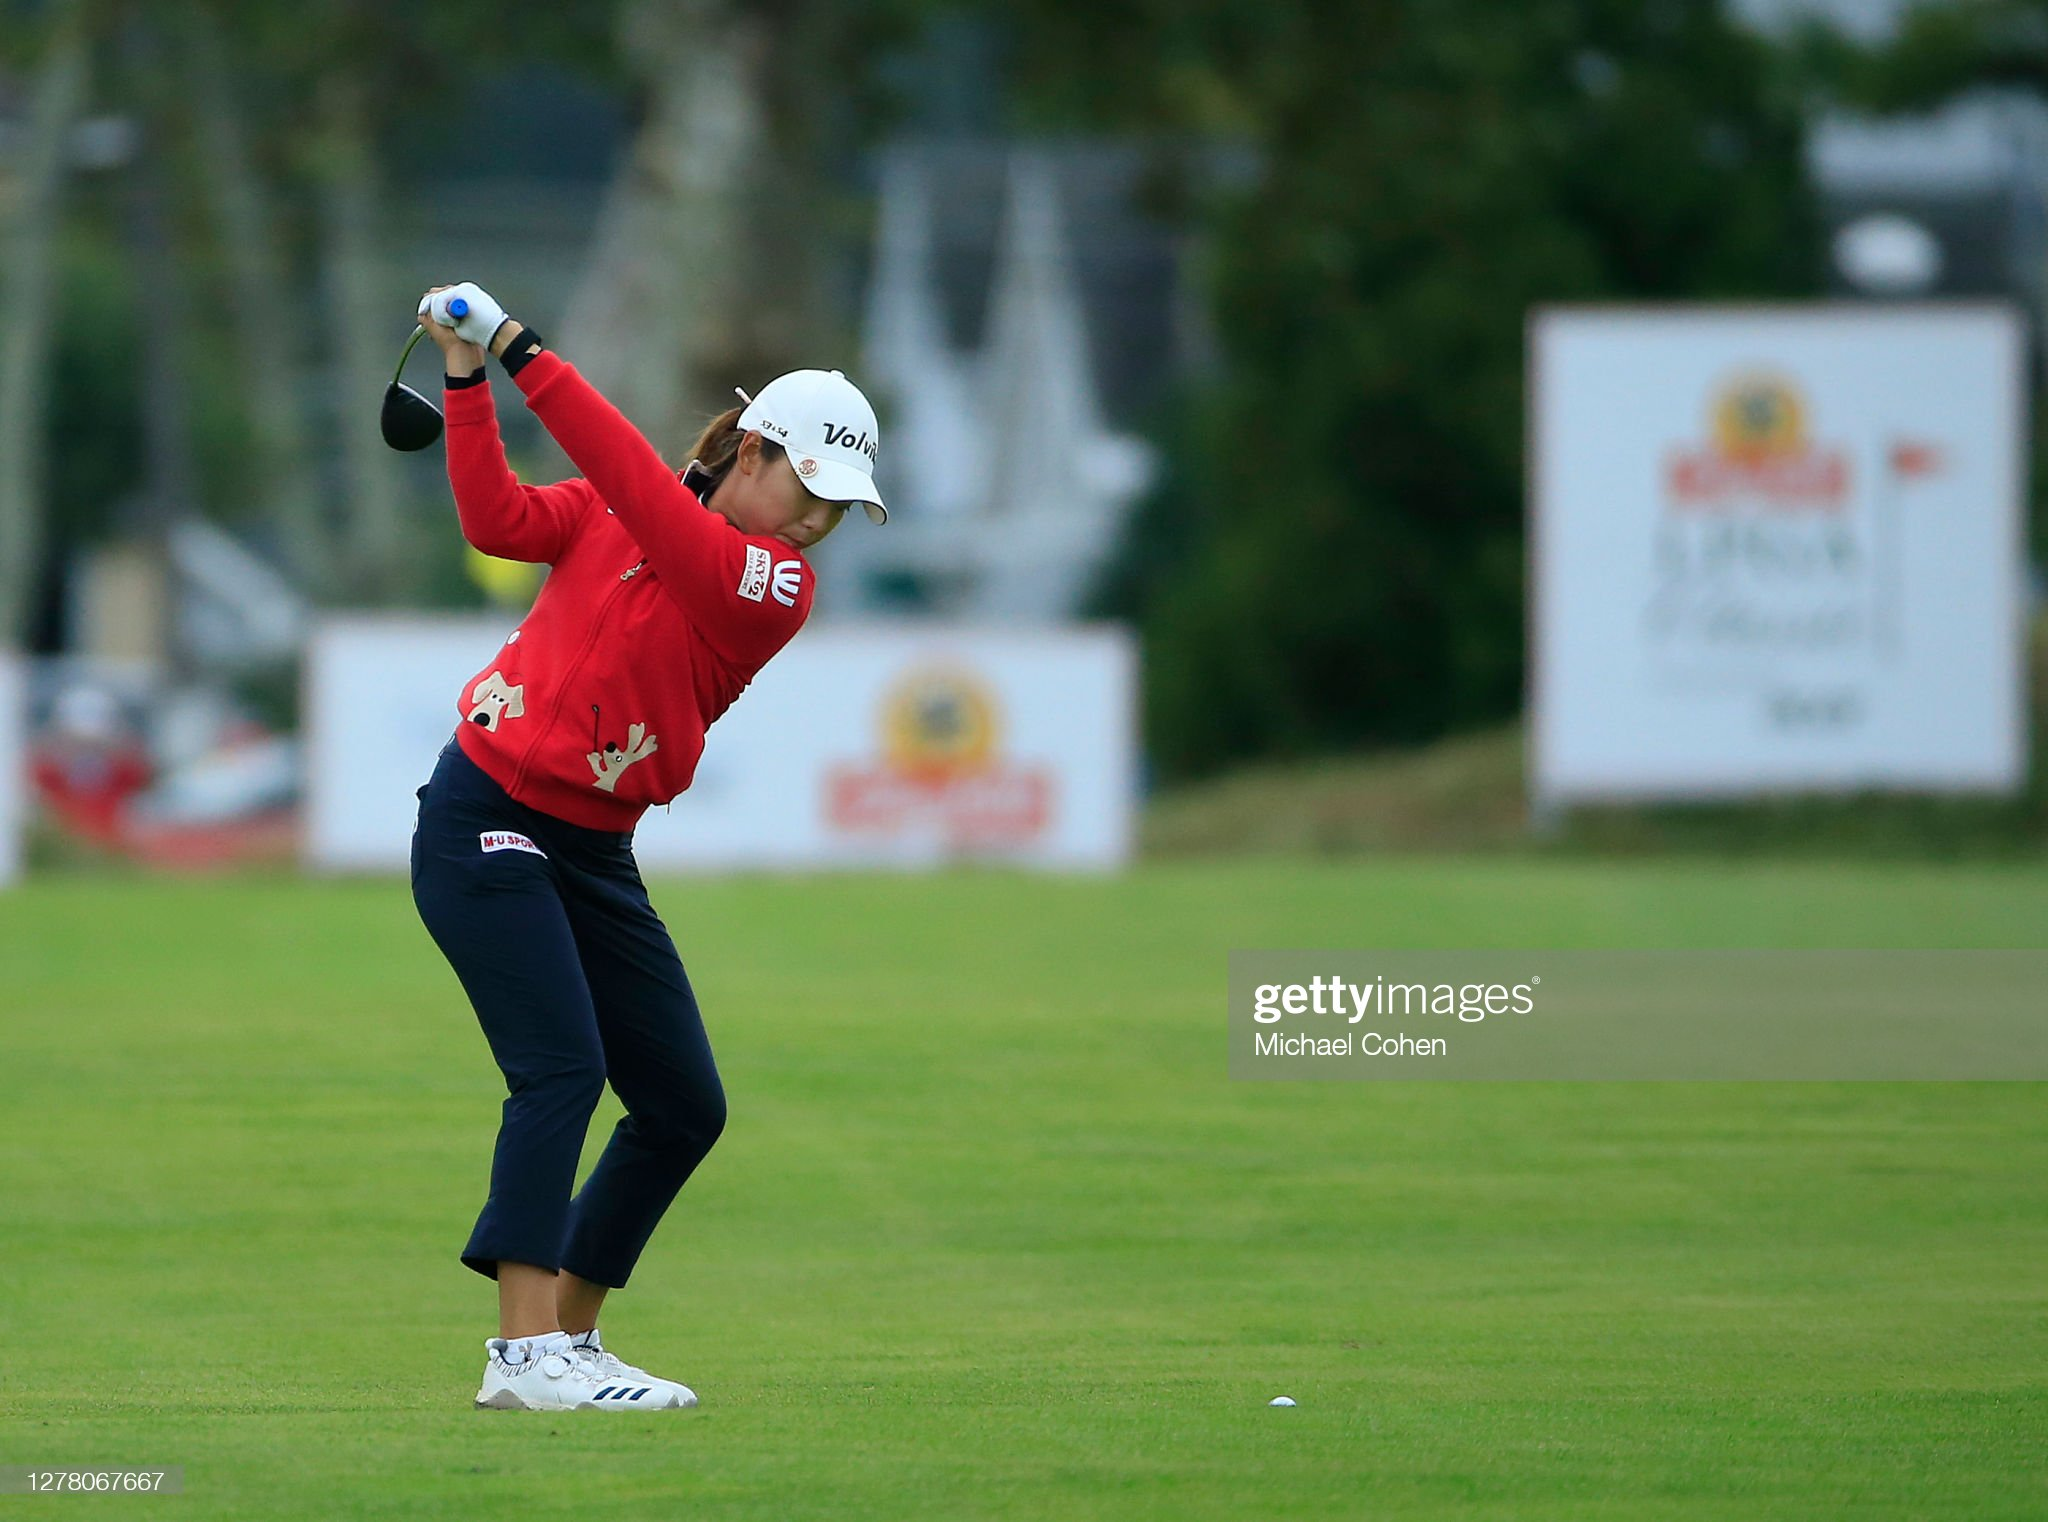 https://media.gettyimages.com/photos/mi-hyang-lee-of-korea-hits-second-shot-on-the-18th-hole-during-the-picture-id1278067667?s=2048x2048